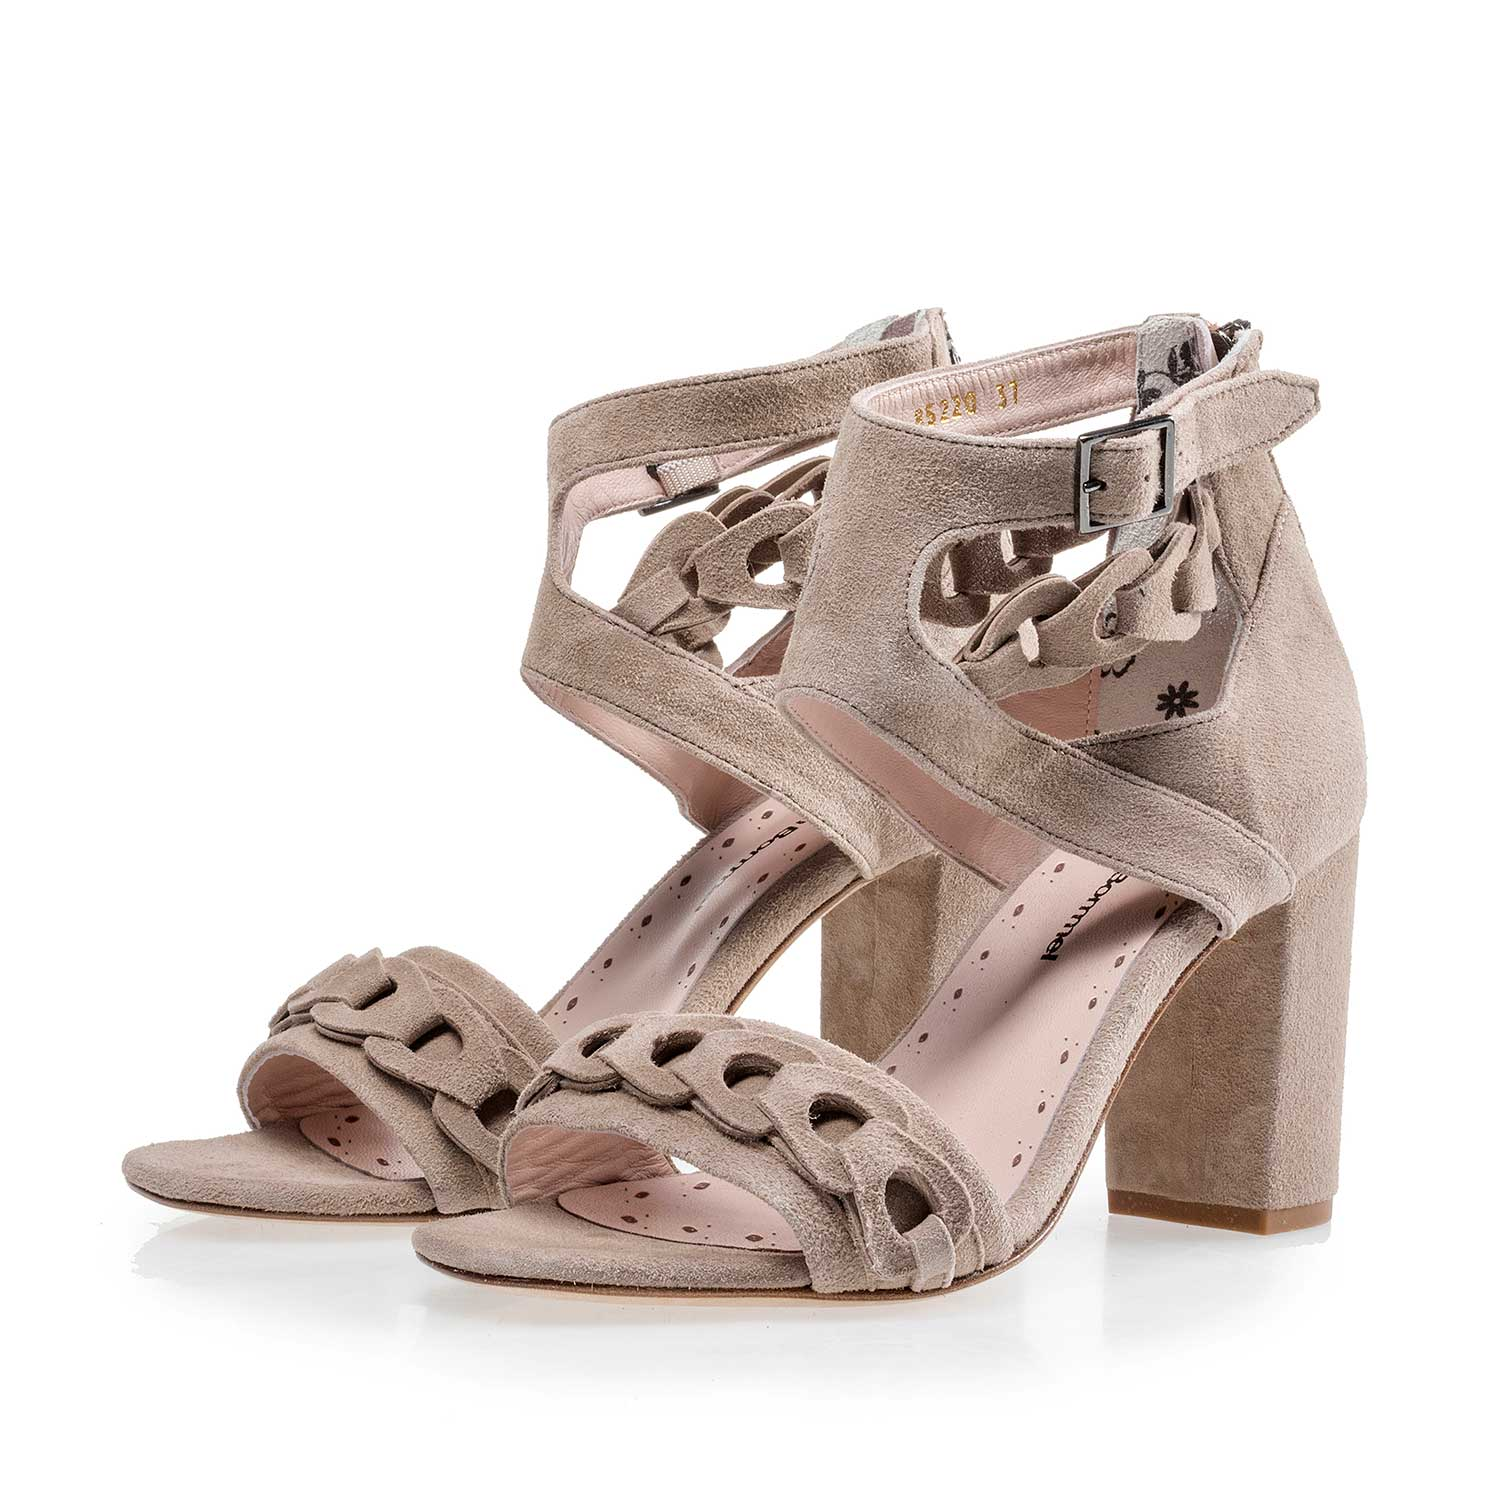 85220/01 - Taupe-coloured calf's suede leather sandal